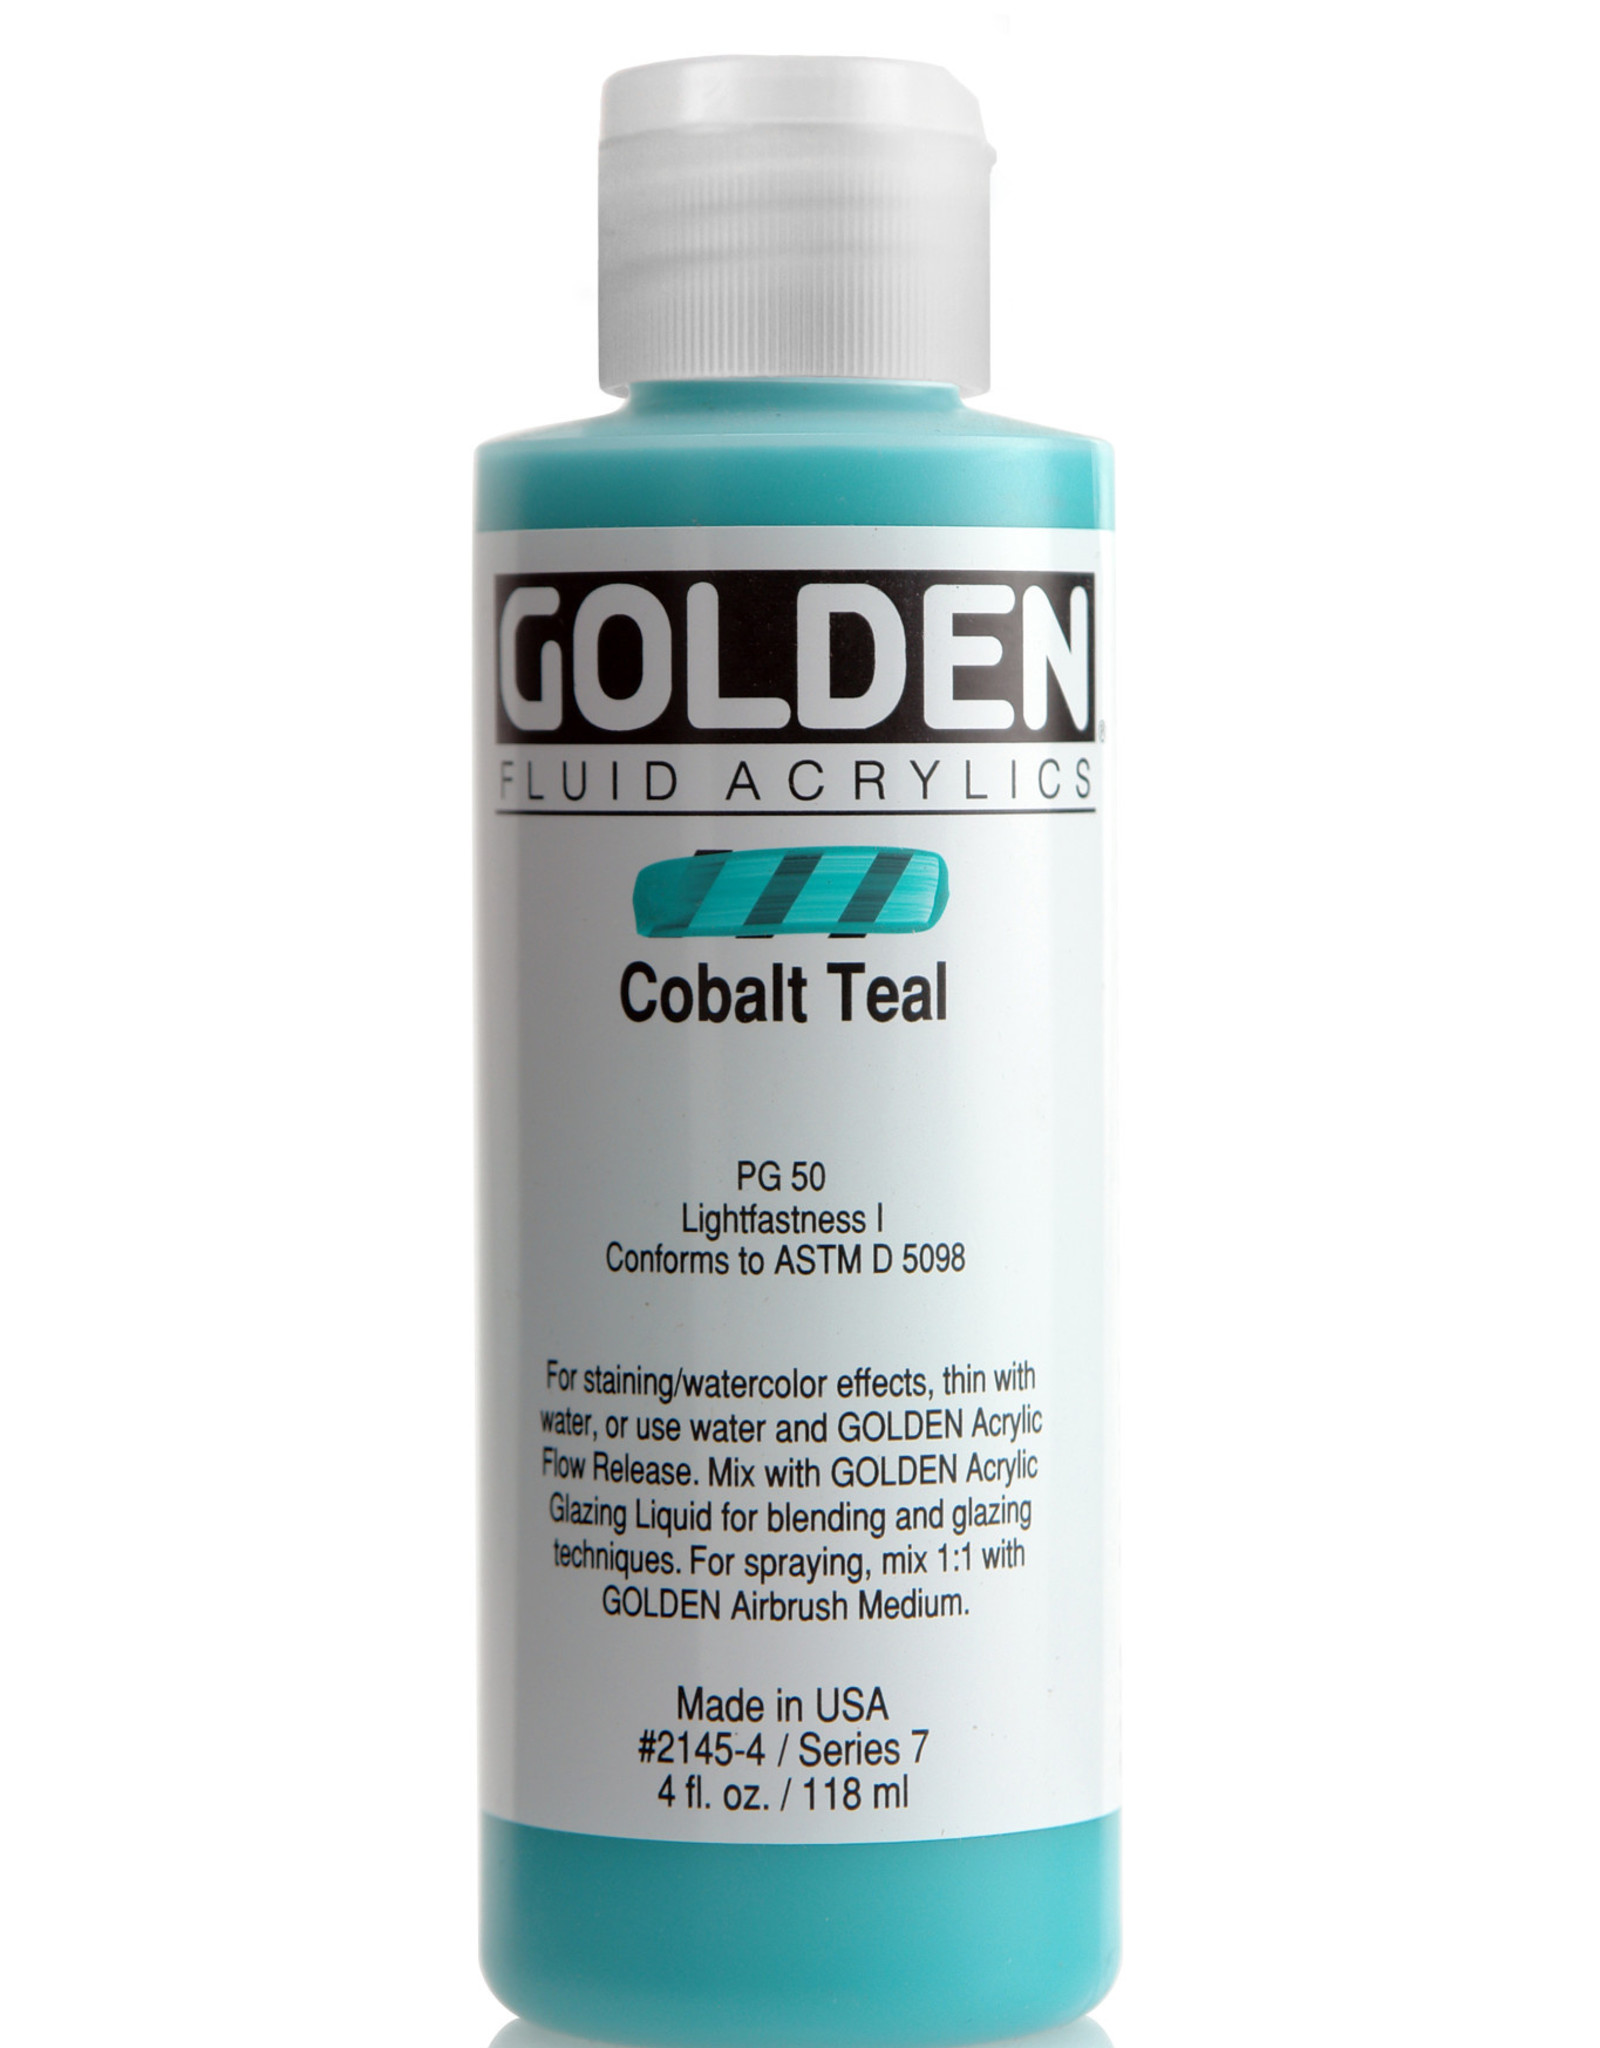 Golden Fluid Acrylic Paint, Cobalt Teal, Series 7, 4fl.oz, Bottle